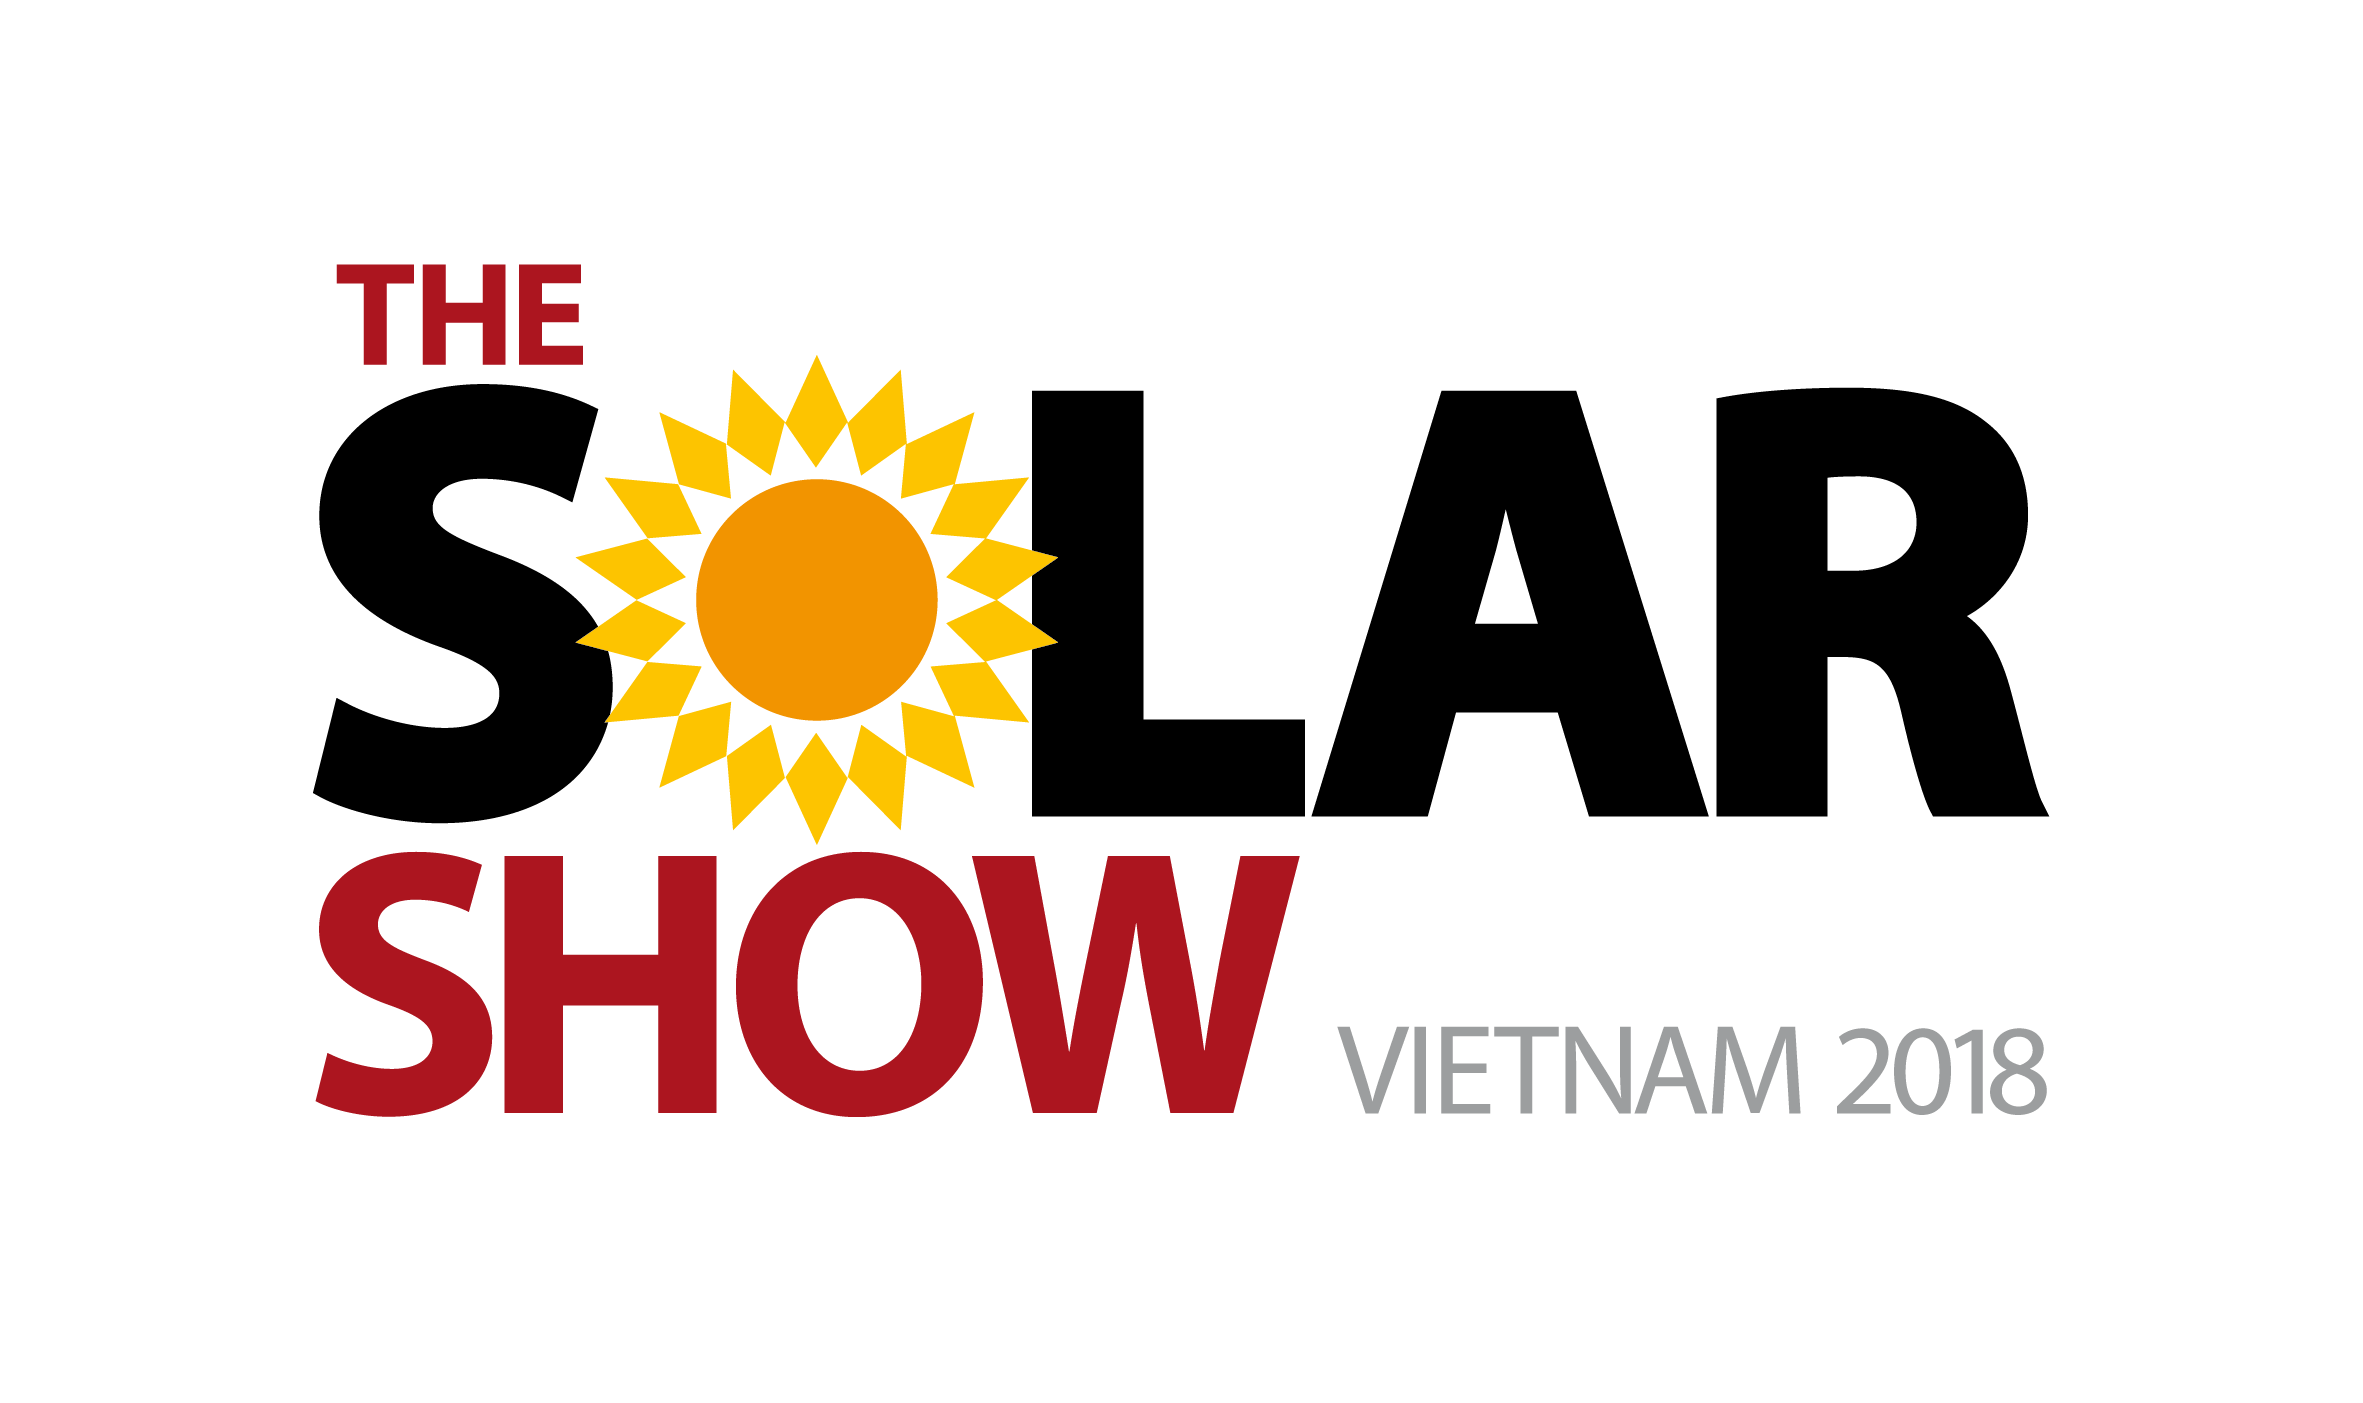 The Solar Show Vietnam 2018 logo - EPS